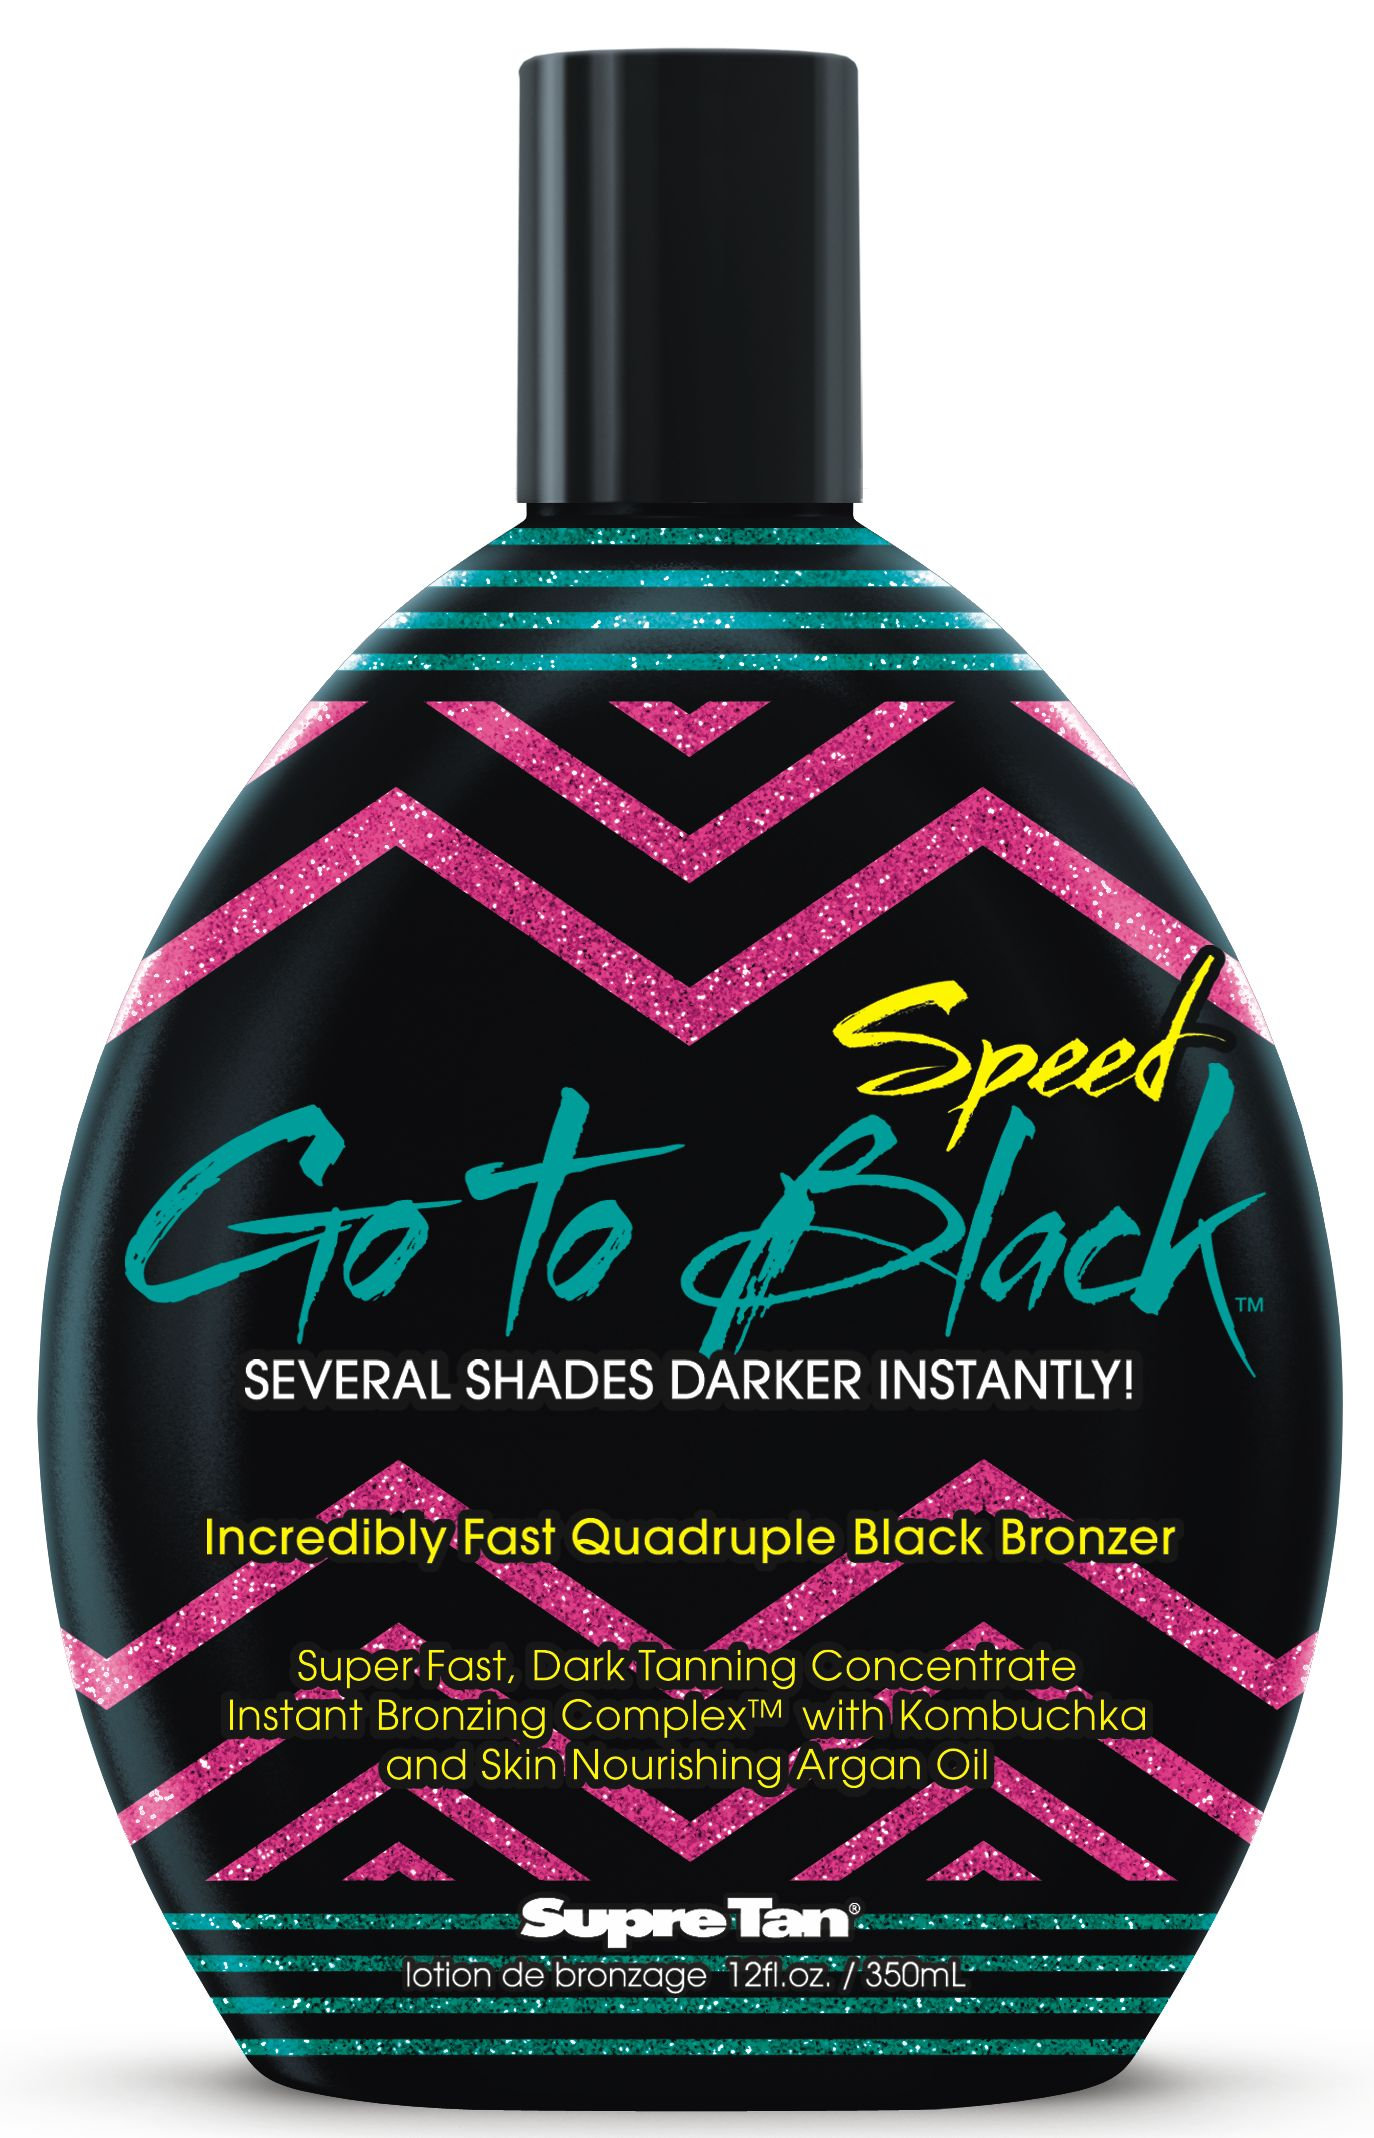 Go to Black™ Speed Quadruple Black Bronzer